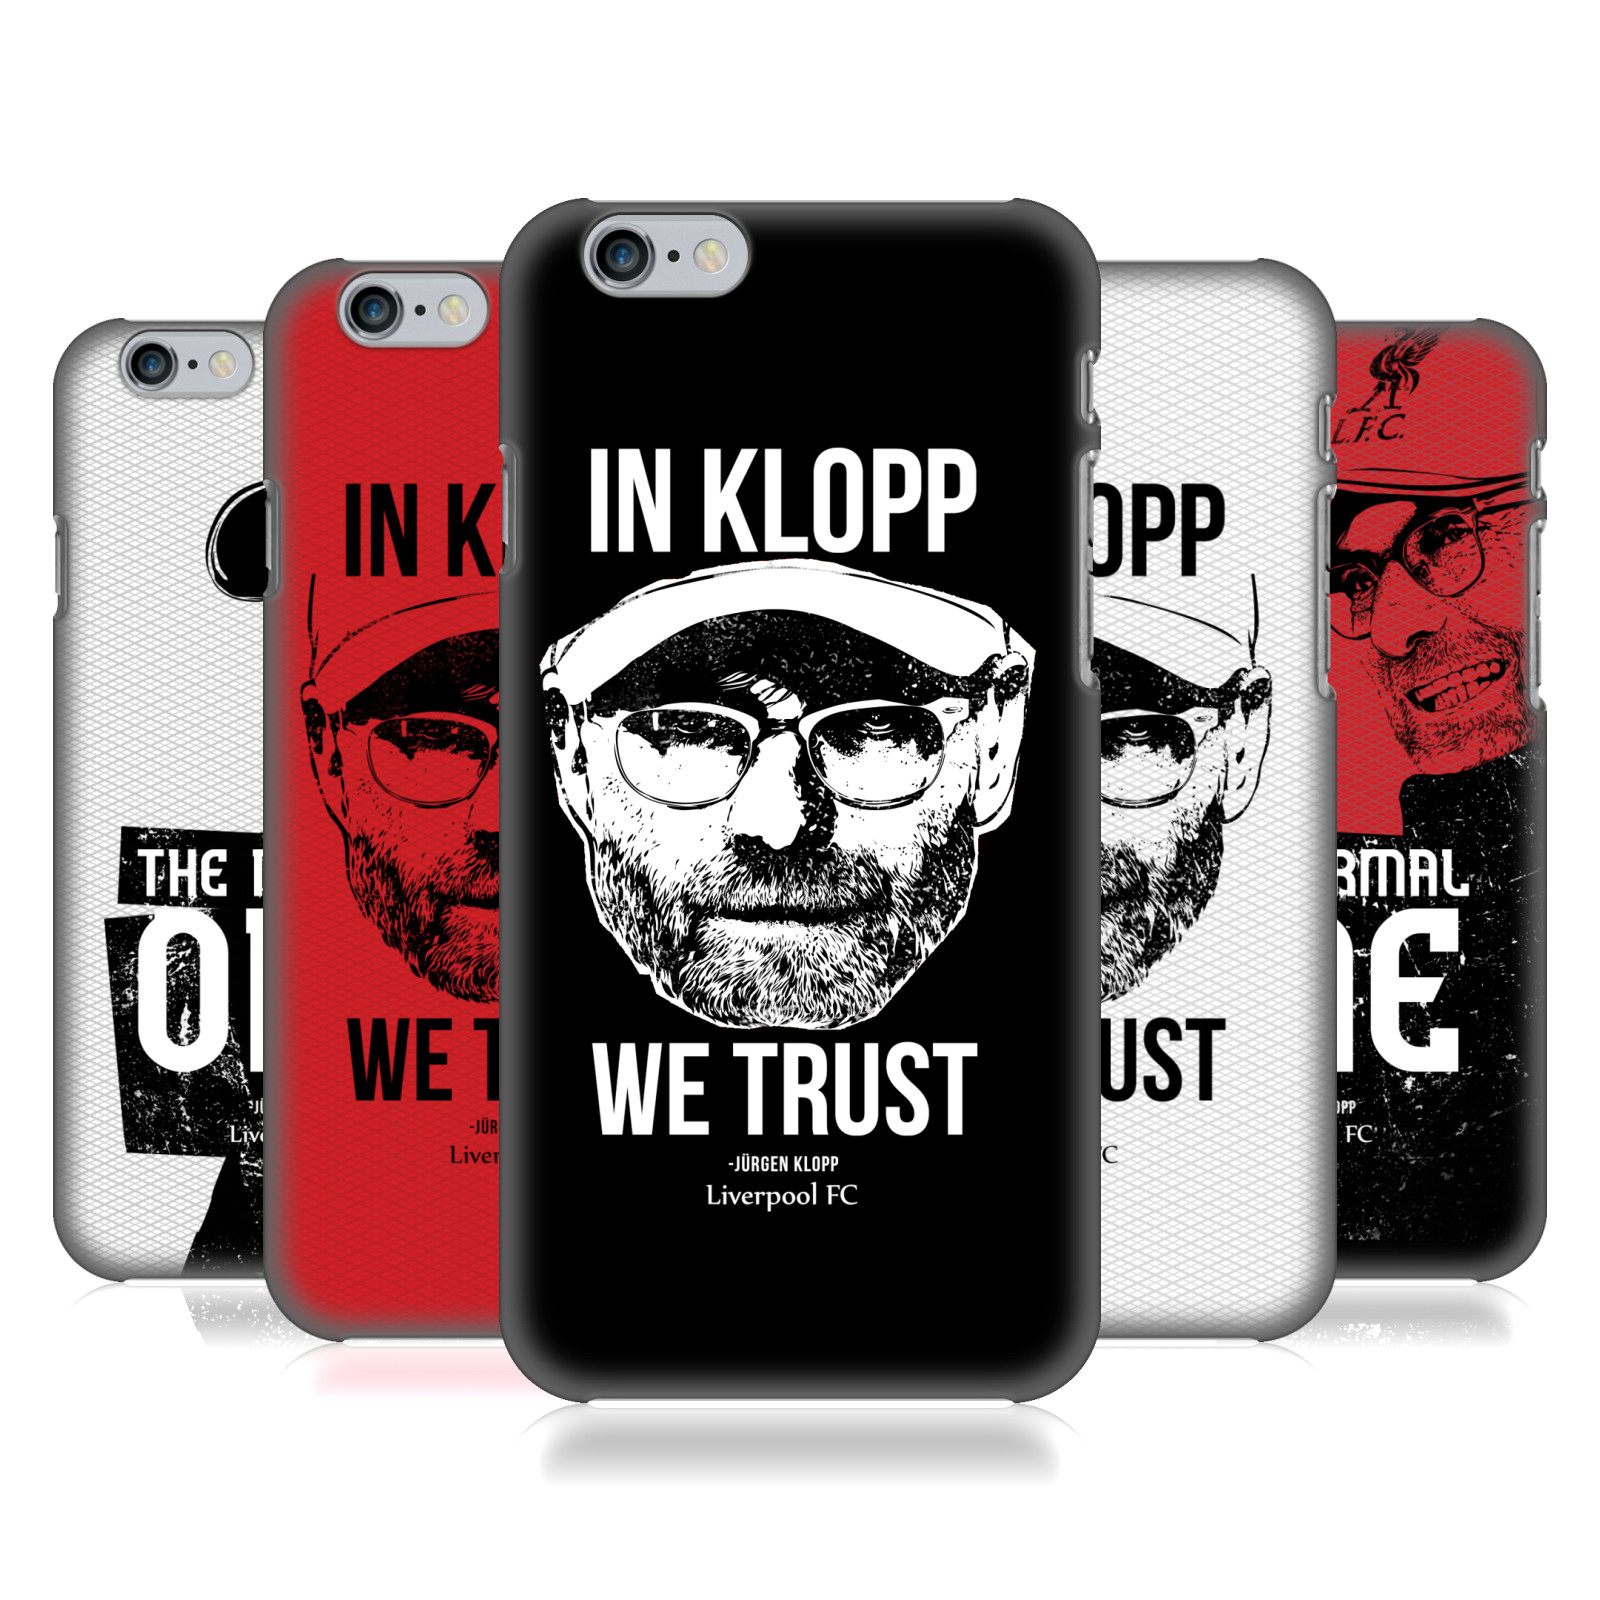 Liverpool FC LFC Jurgen Klopp Illustrations